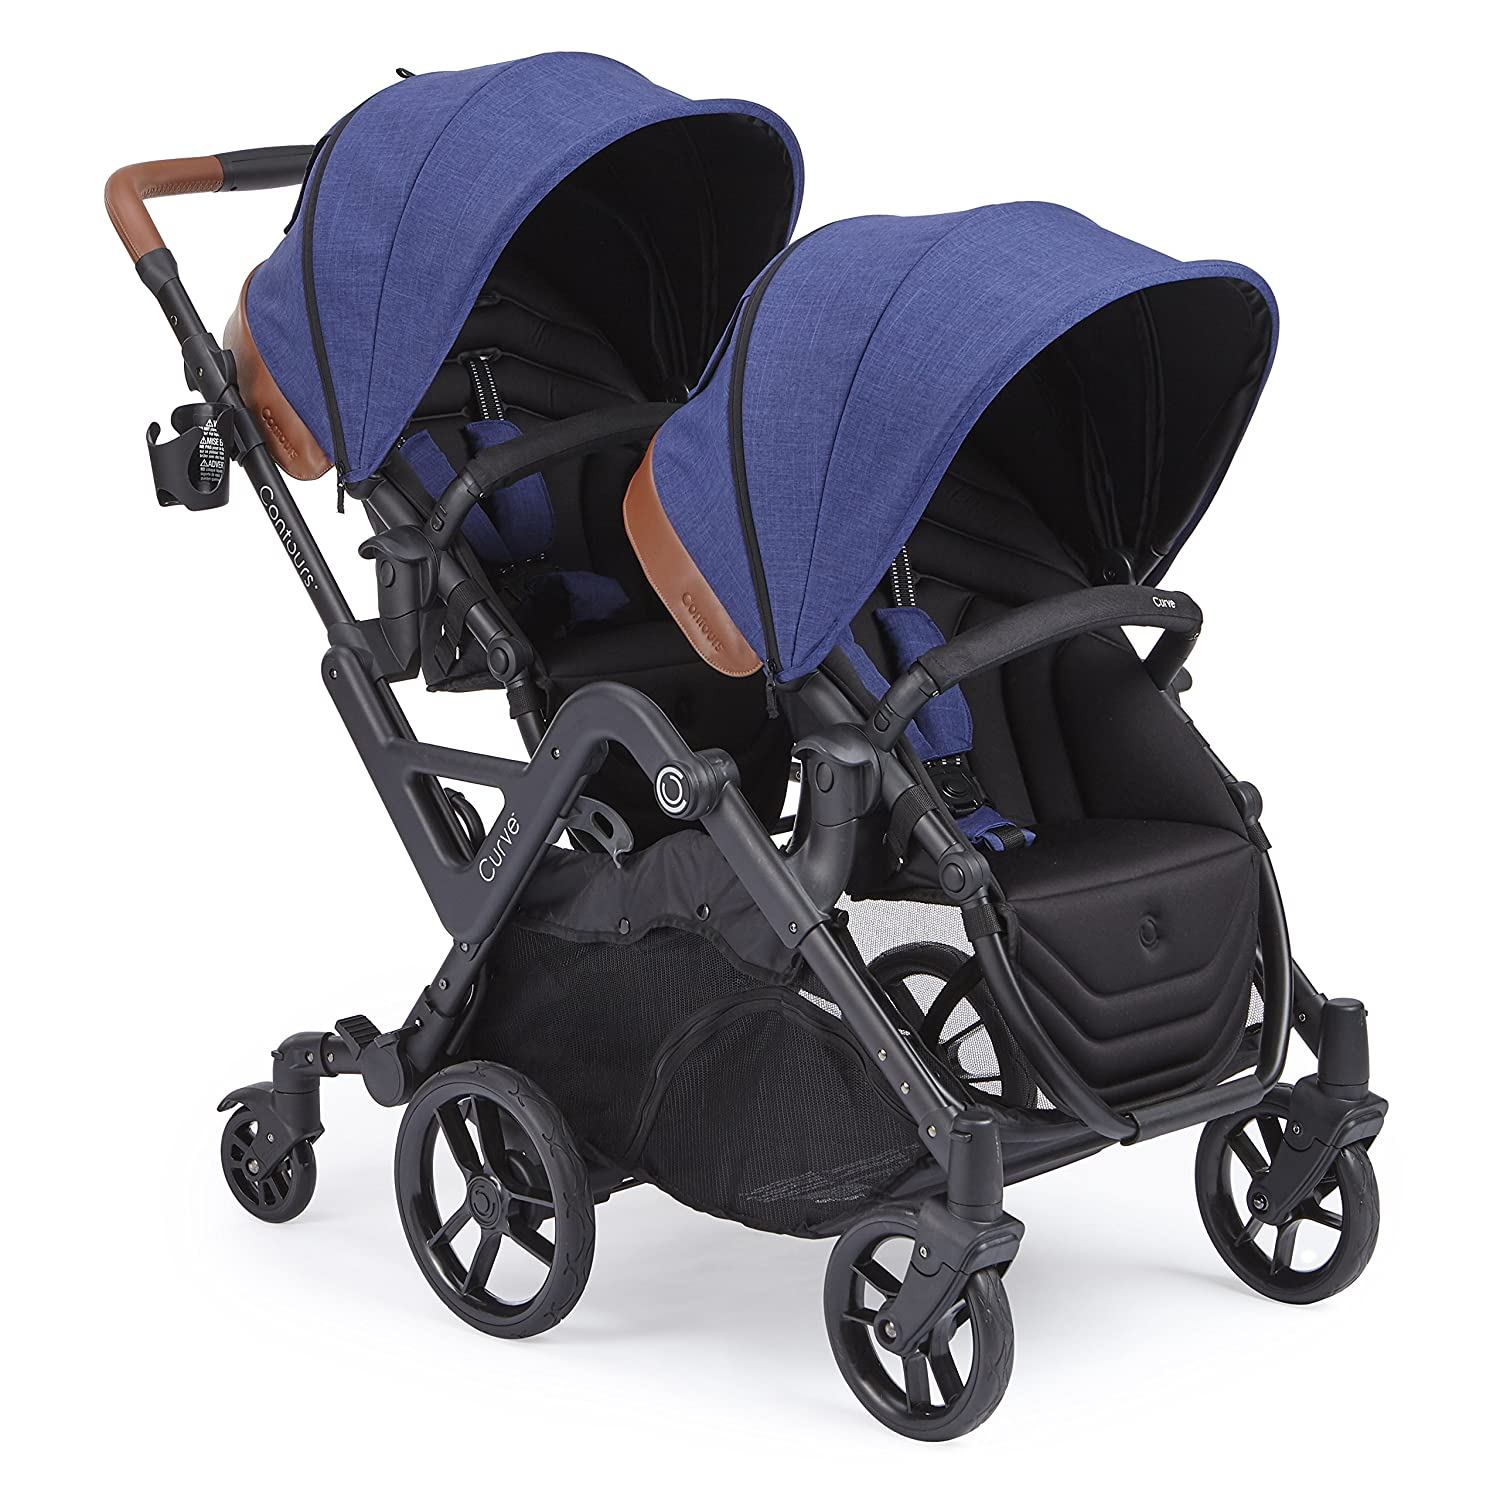 Contours Curve Tandem Double Stroller for Infants, Toddlers or Twins – 360 Turning, Multiple Seating Options, Indigo Blue